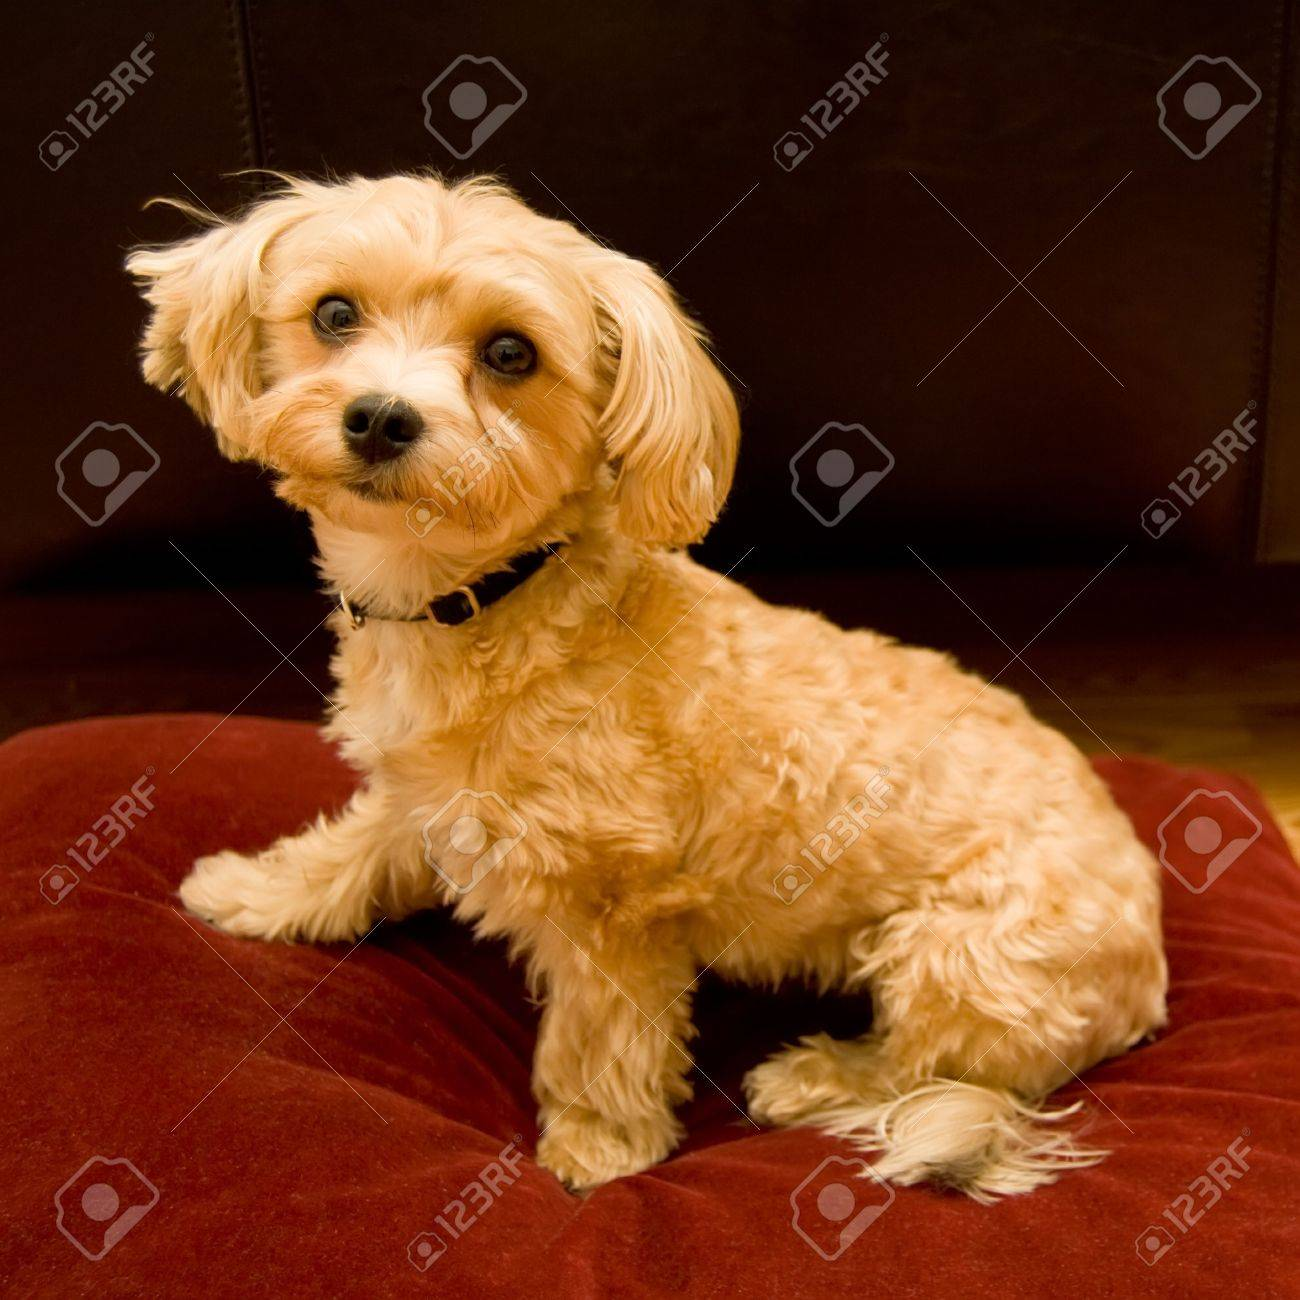 Yorkie And Shitzu Mixed Puppy Sitting On A Red Velvet Cushion Stock Photo Picture And Royalty Free Image Image 2117986